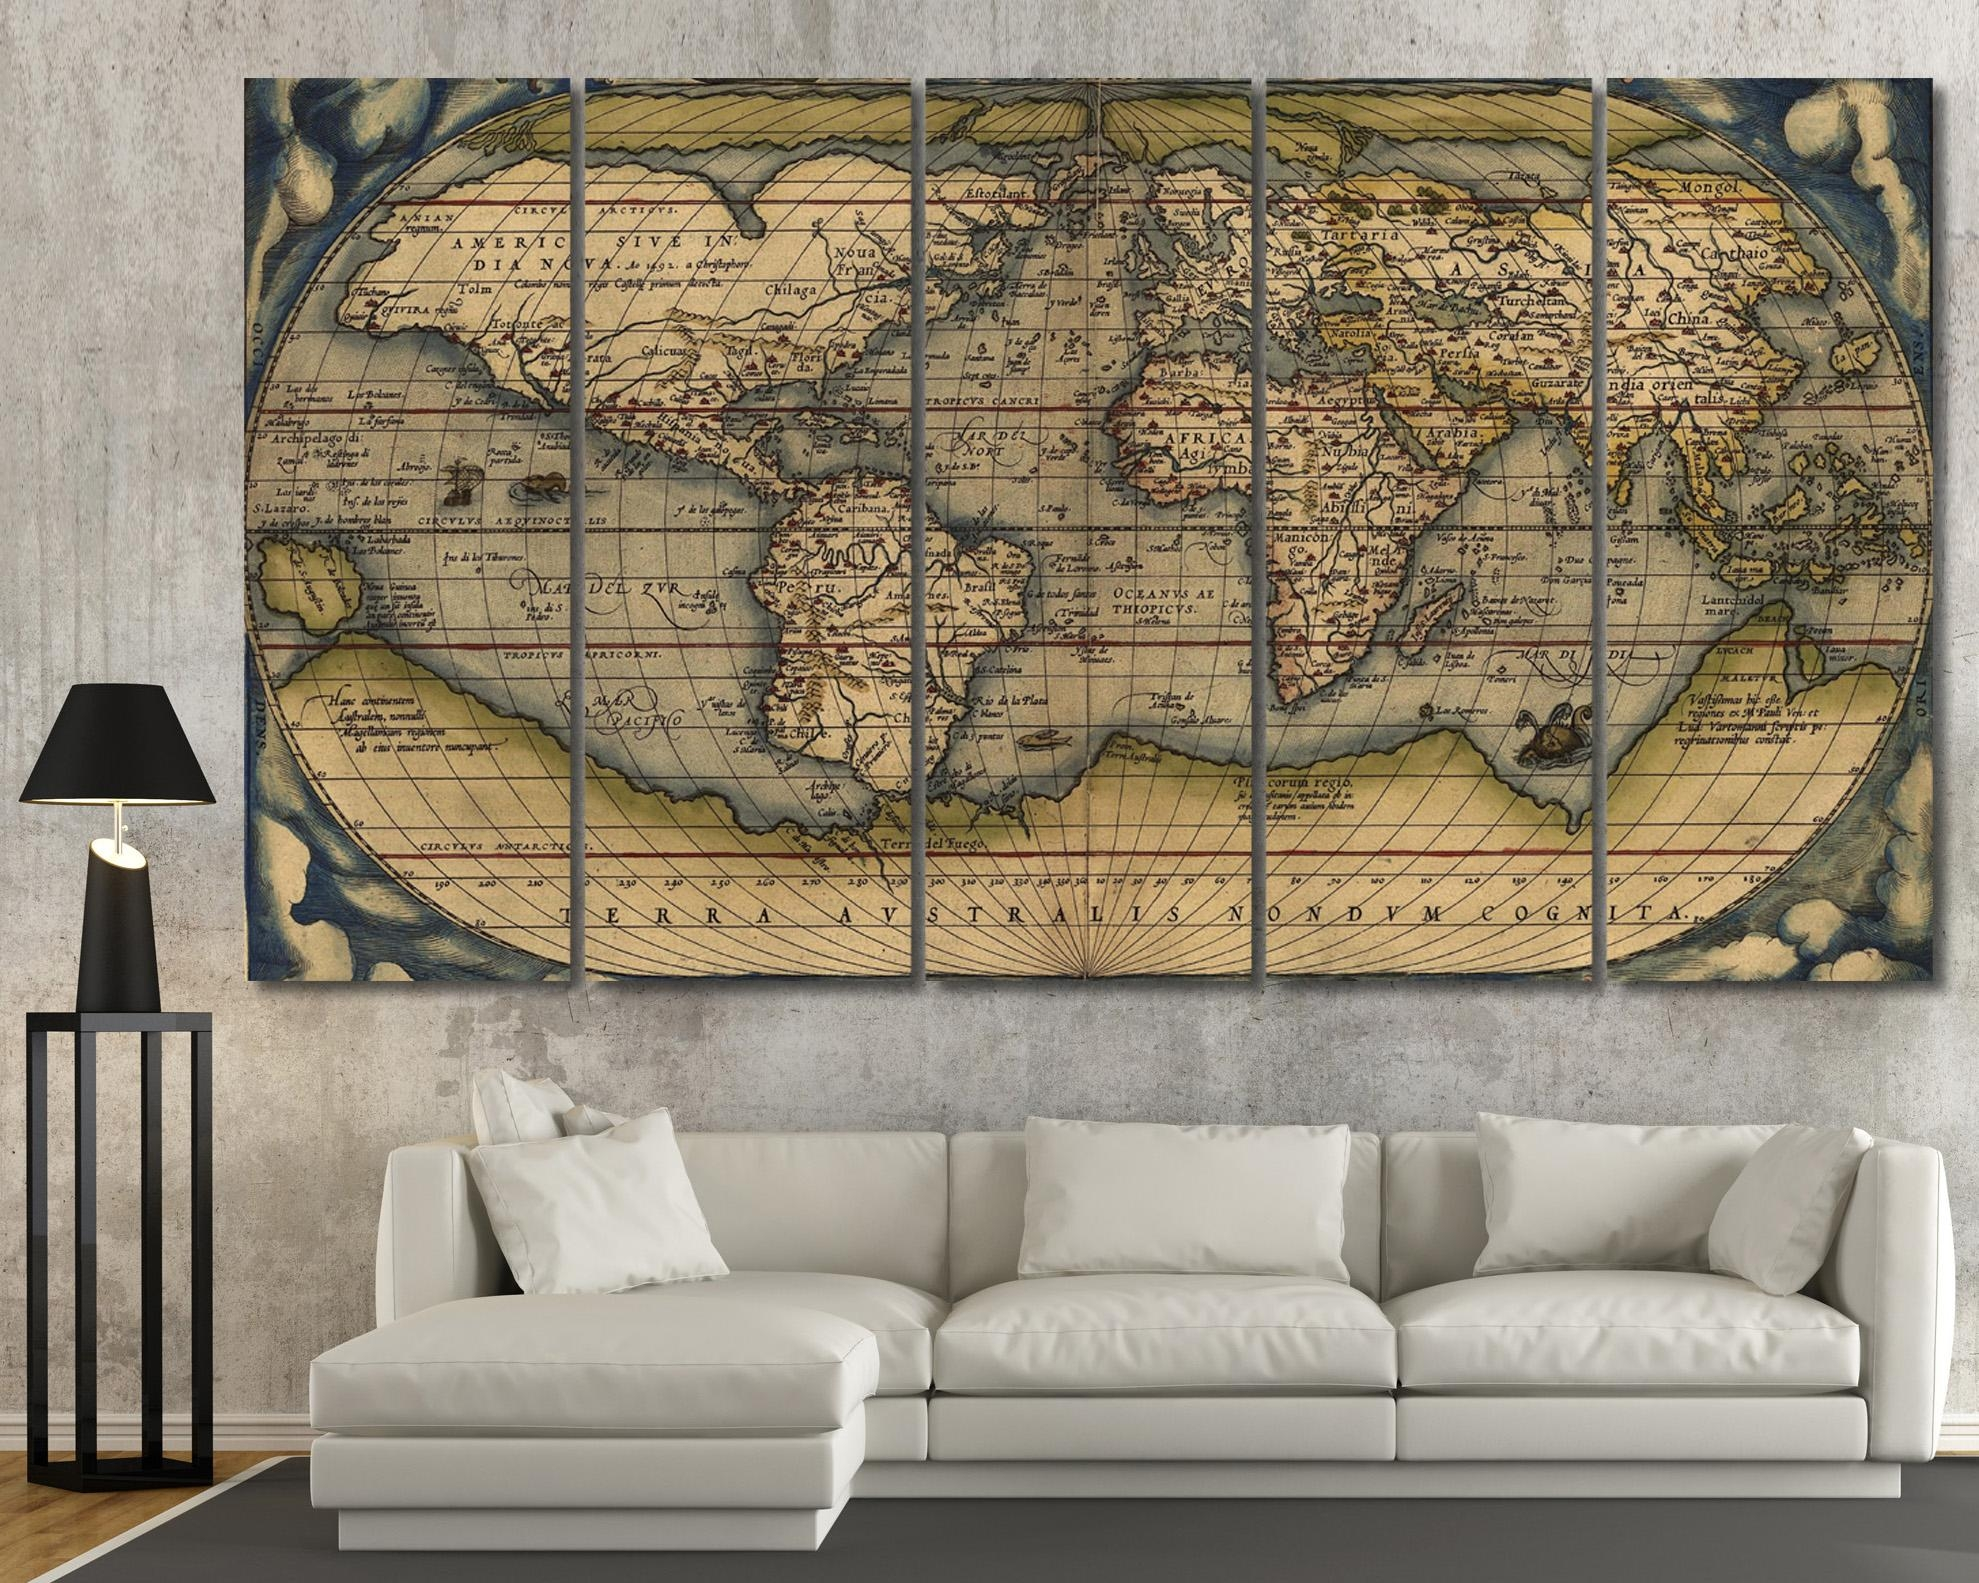 Large Vintage Wall Art Old World Map At Texelprintart Within Map Wall Art (View 5 of 20)